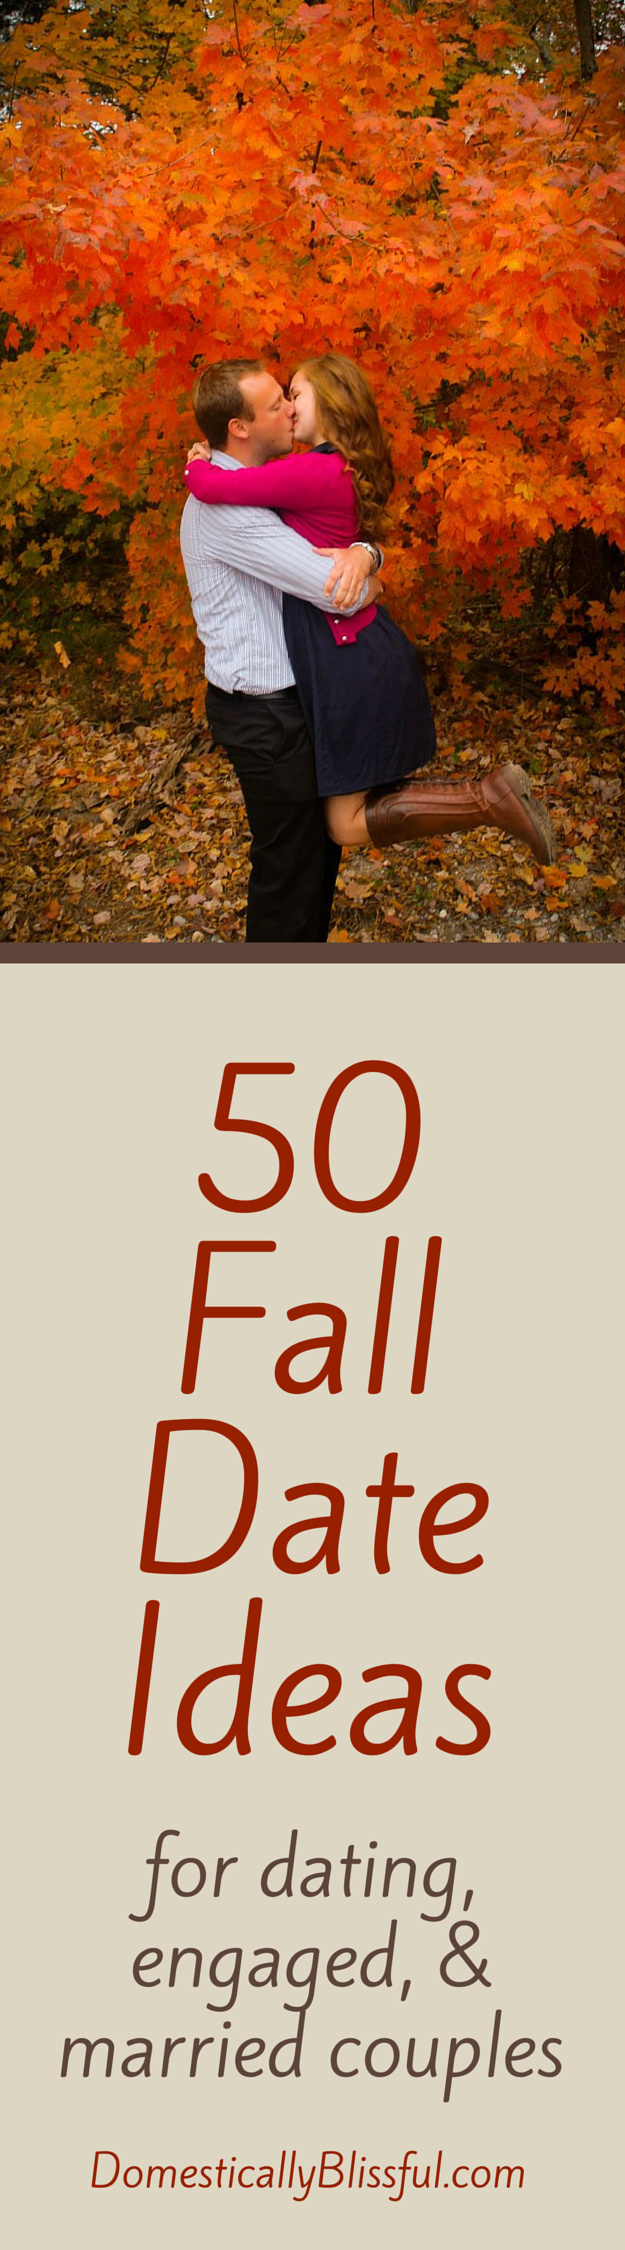 50 fall date ideas for dating engaged and married couples by